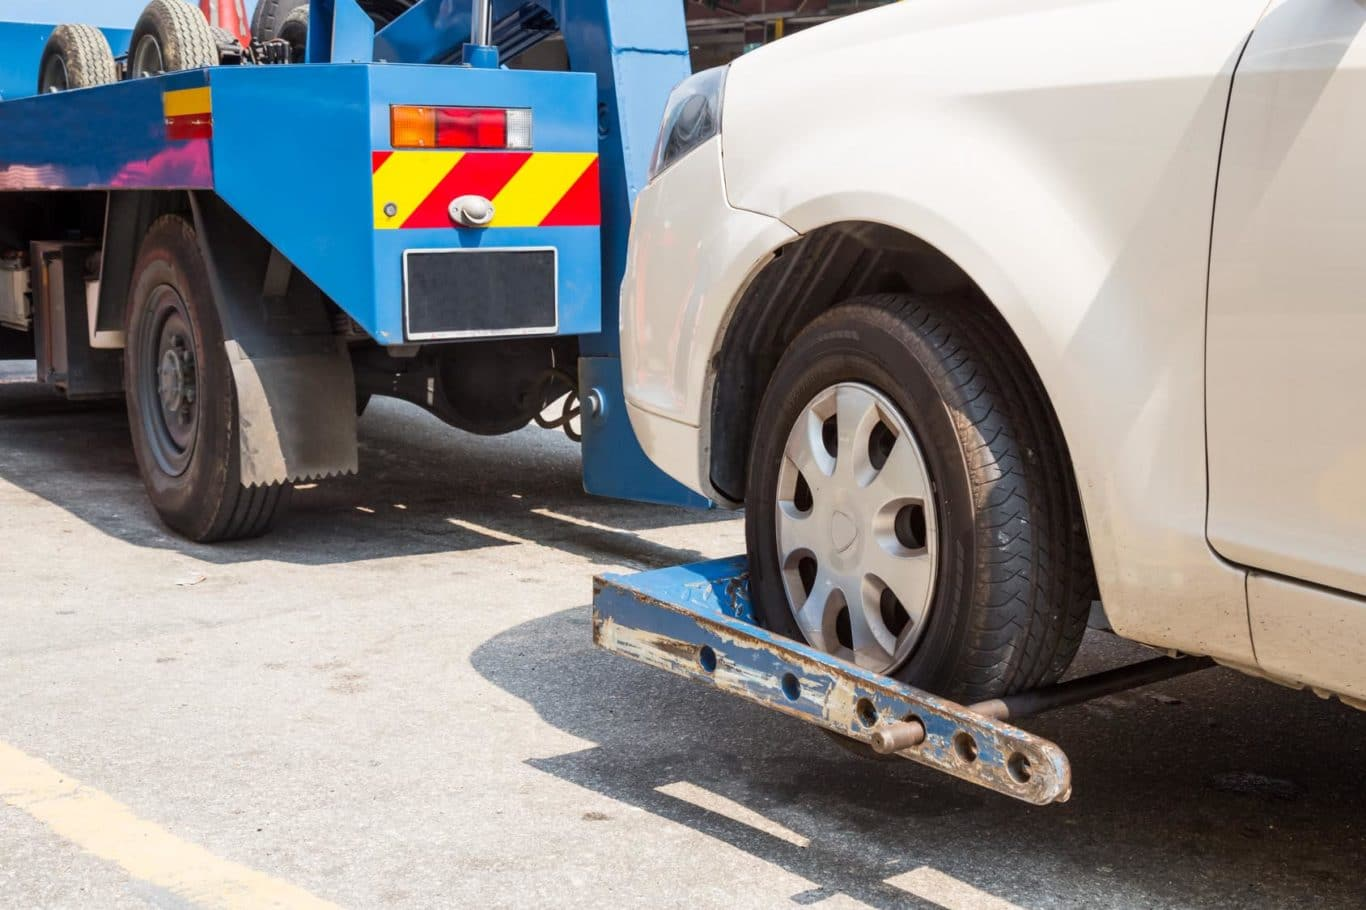 Carnaross expert Car Towing services